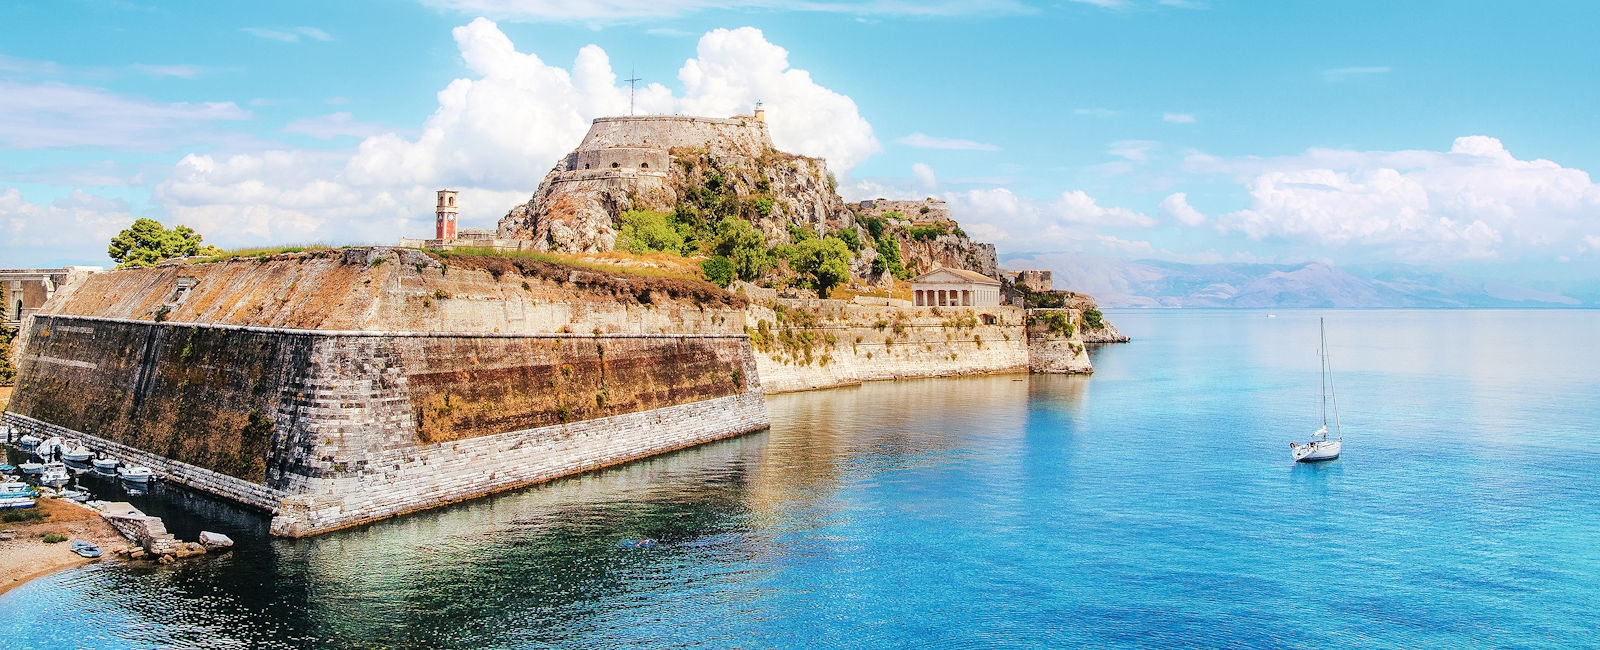 luxury corfu town holidays